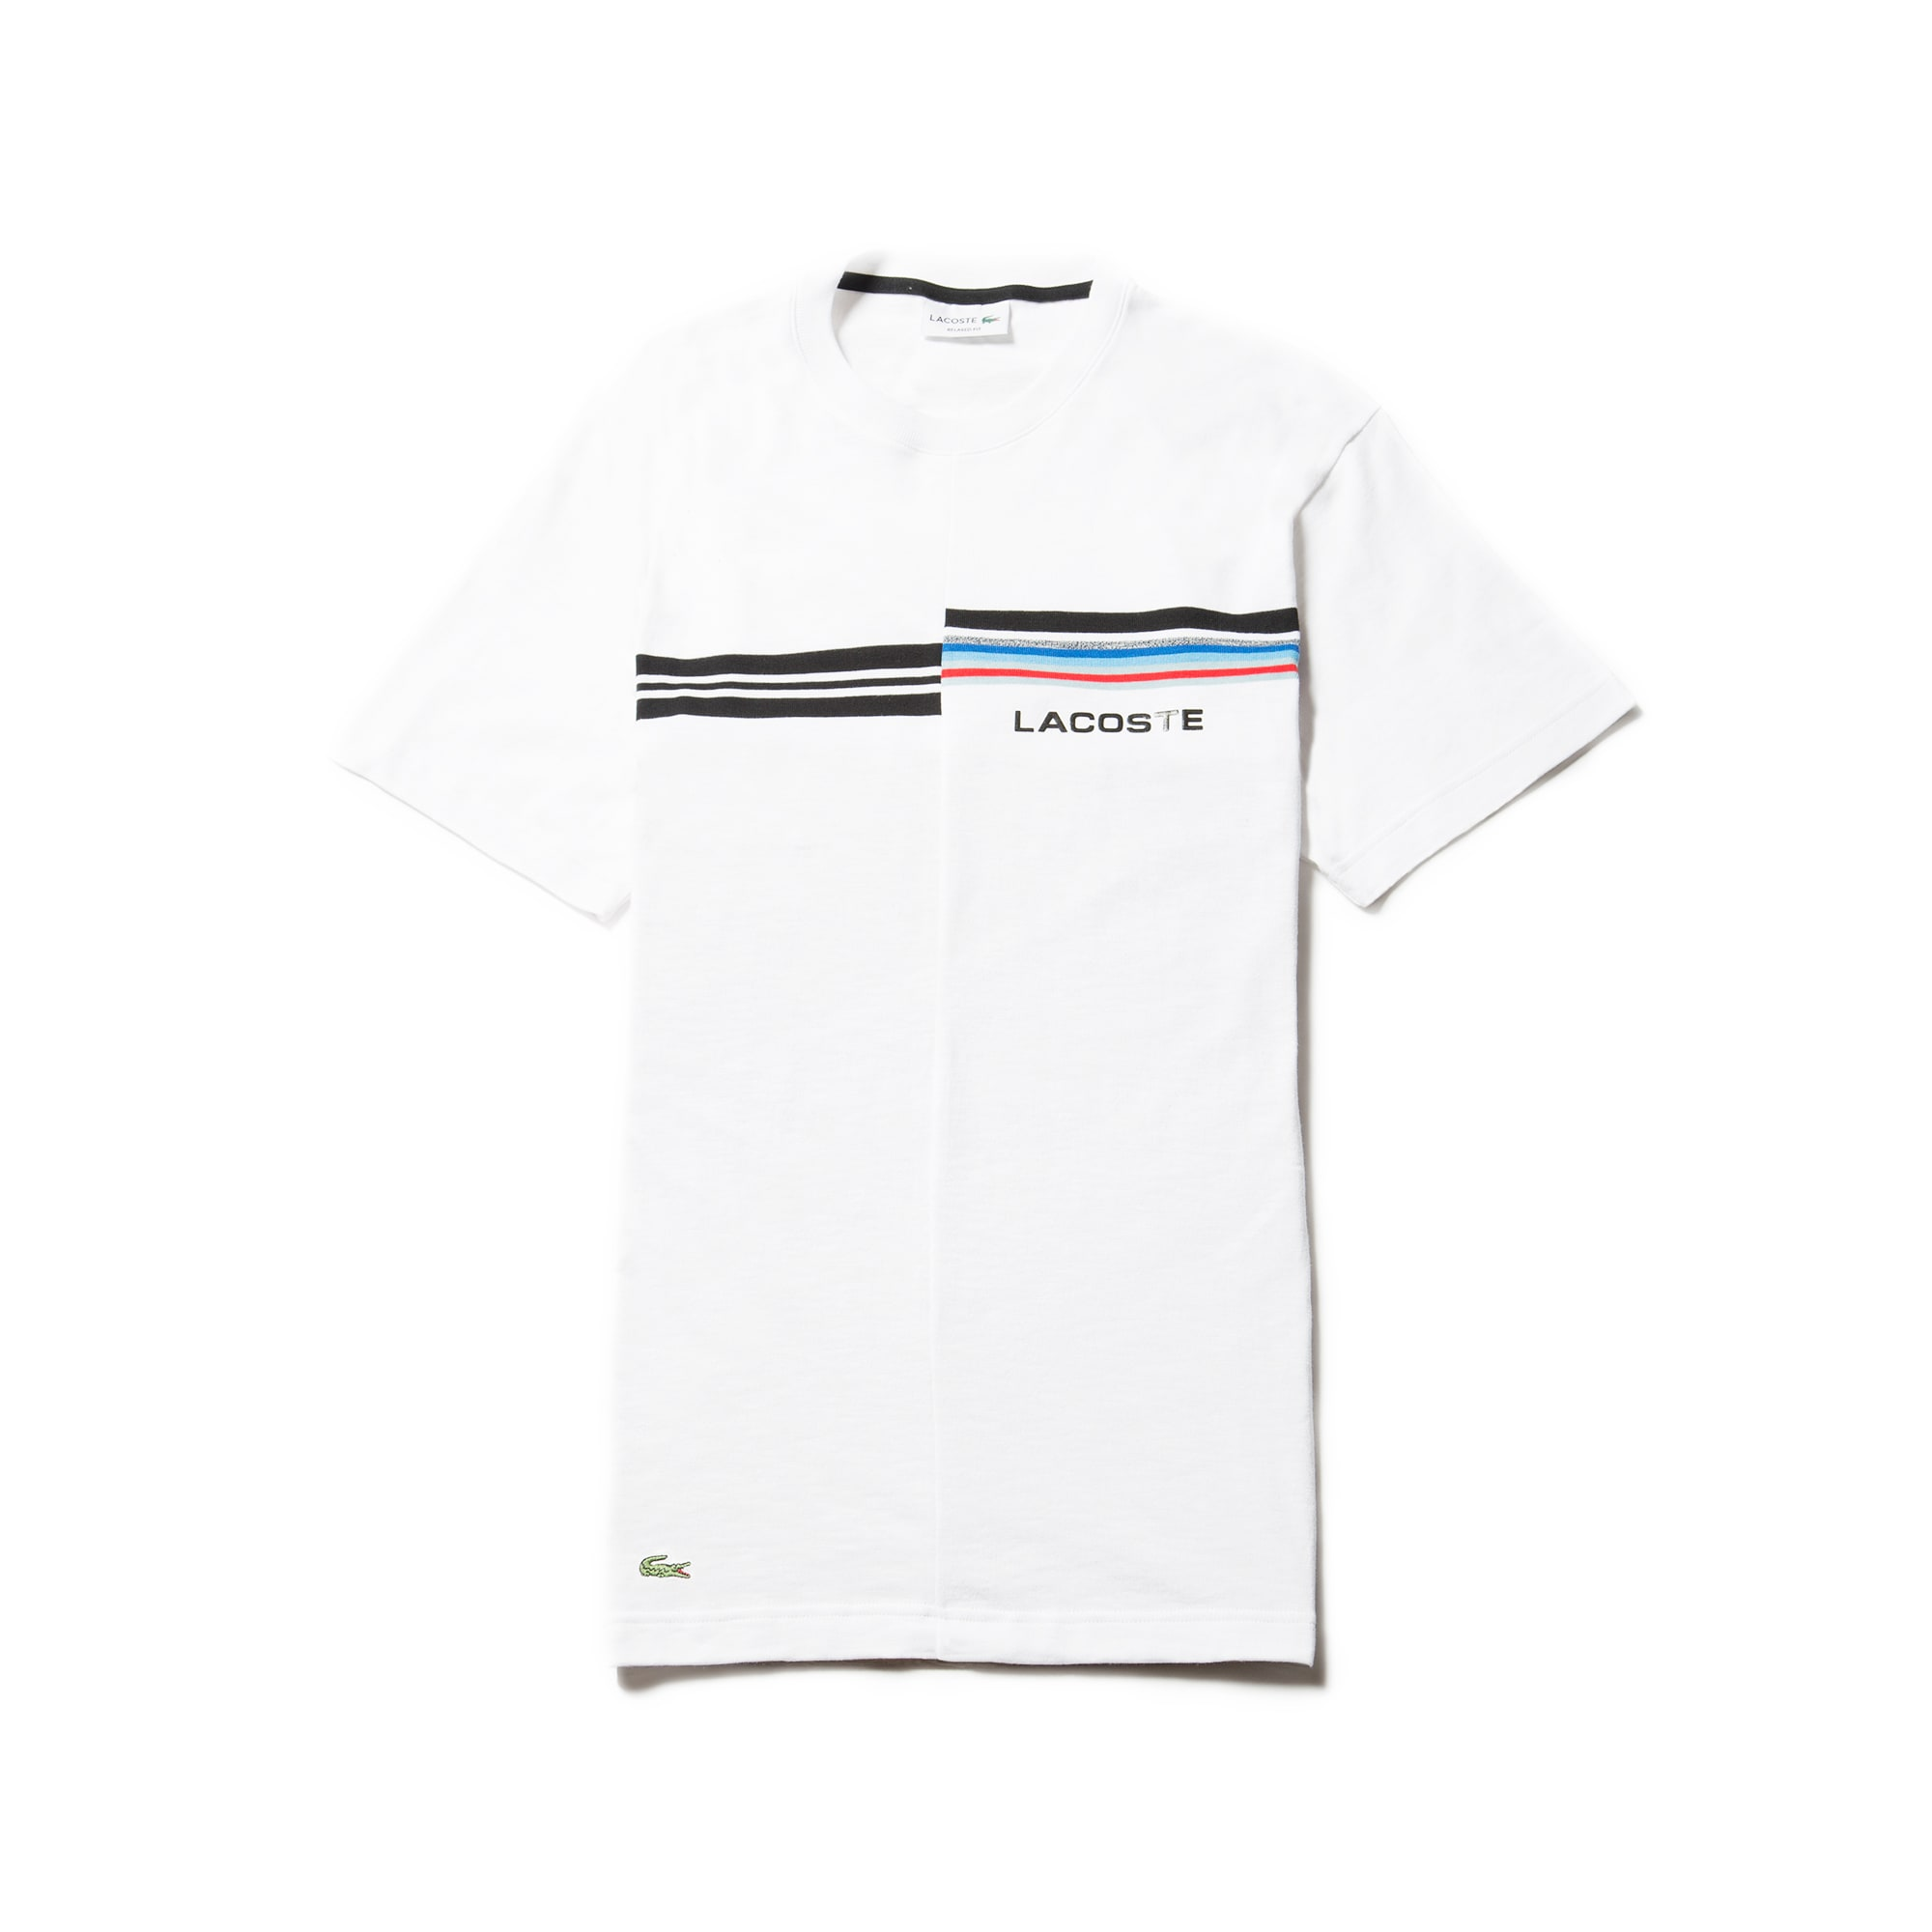 09720ca5c7 Men's 3D Lacoste Branding and Print Jersey Crew Neck T-shirt | LACOSTE